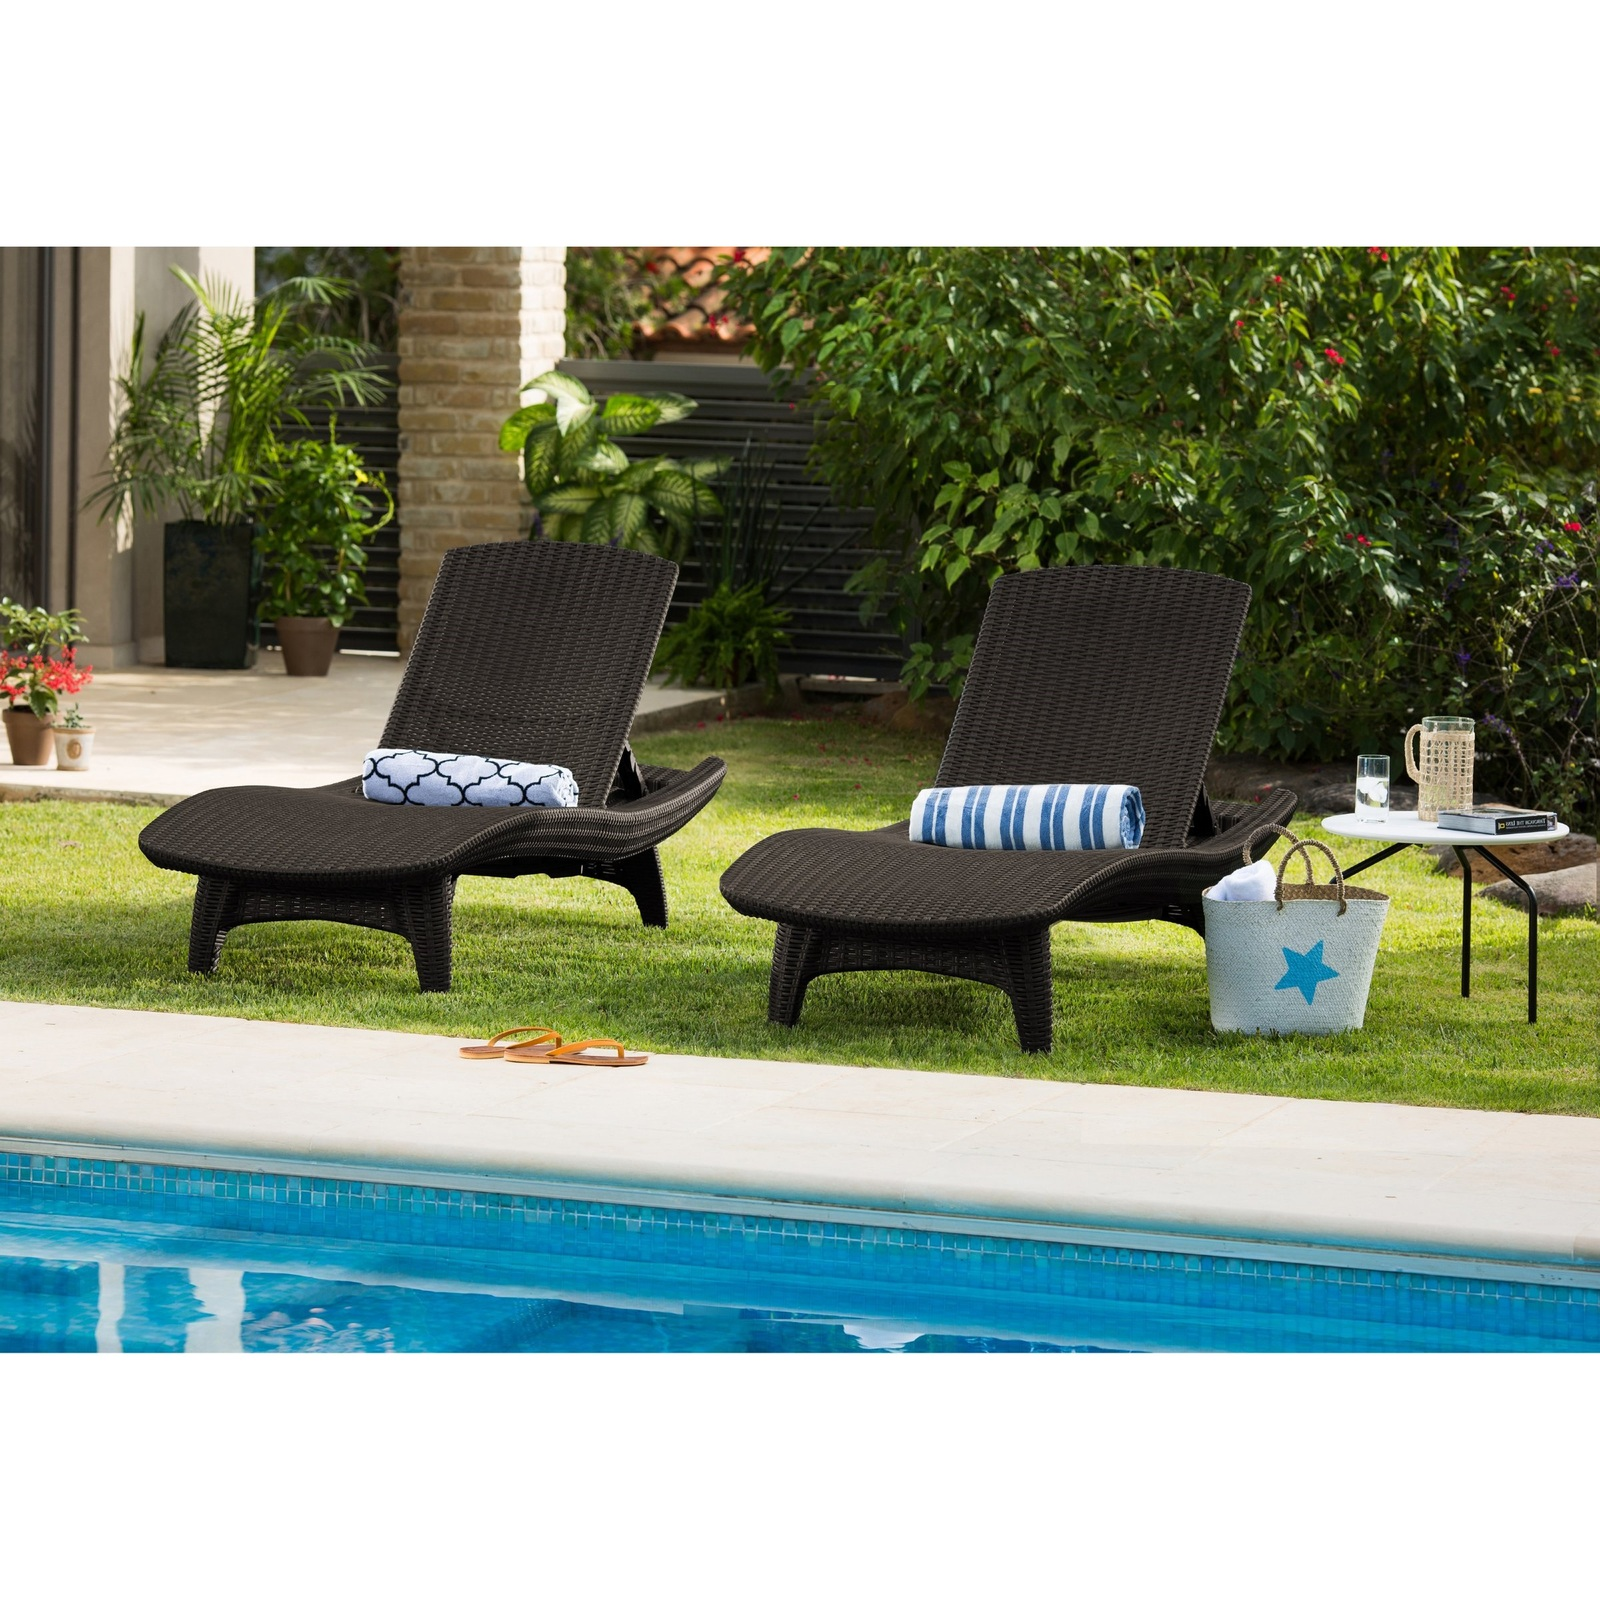 Chaise lounges set outdoor patio pool furniture 2 piece for Outdoor poolside furniture